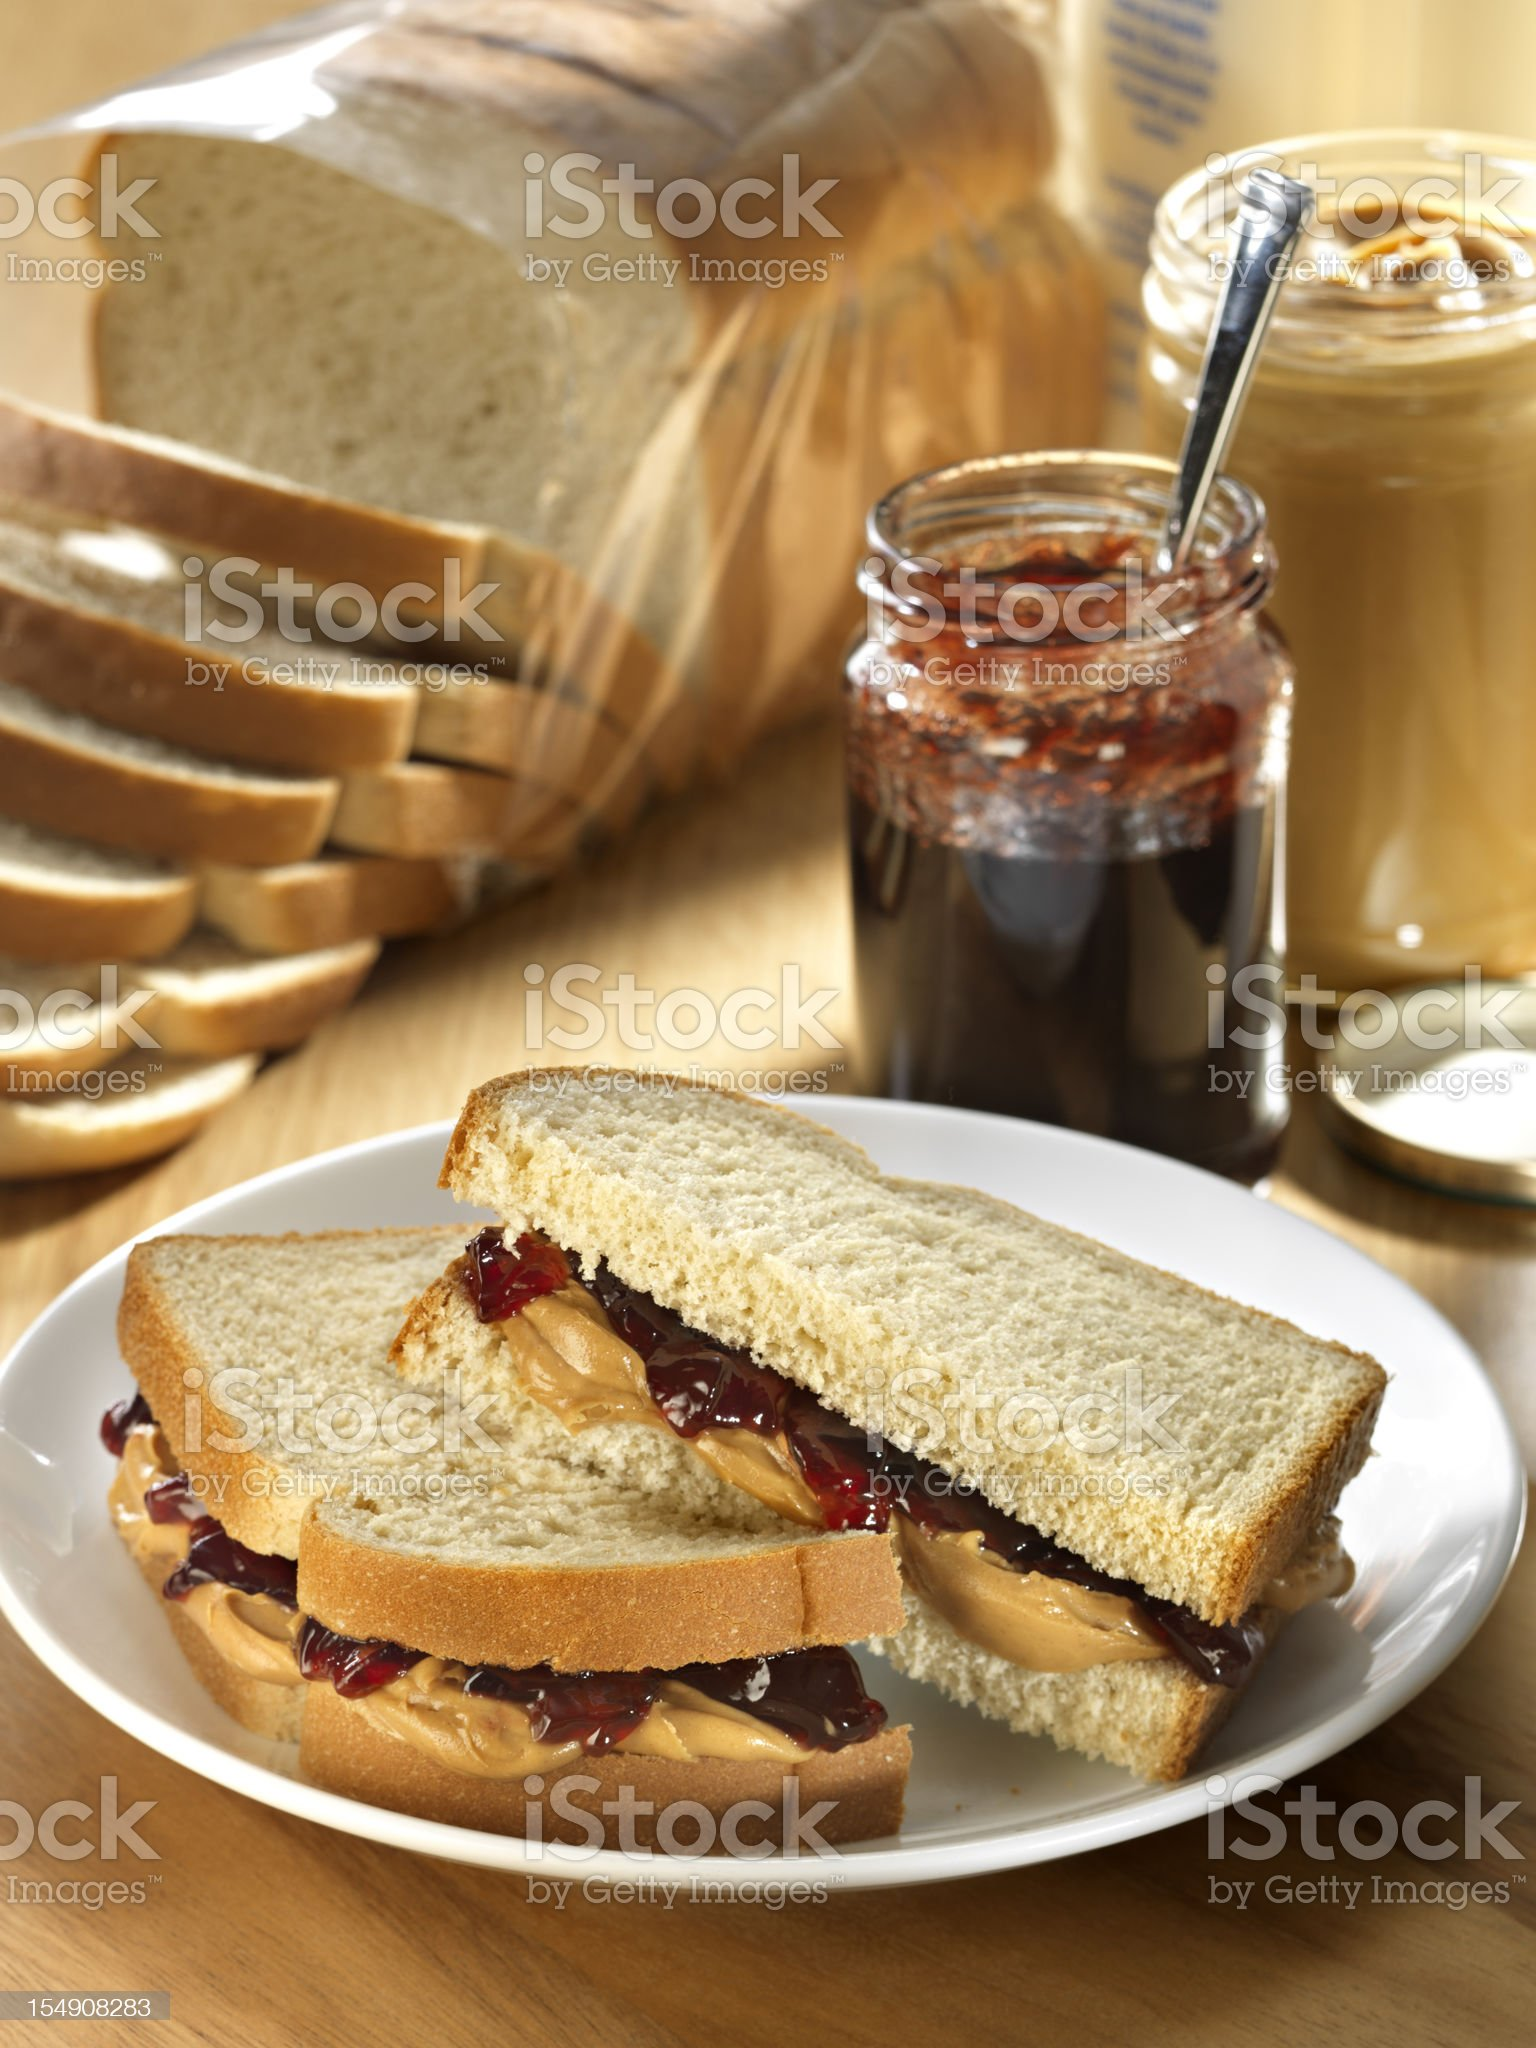 A photograph of a peanut butter and jelly sandwich royalty-free stock photo